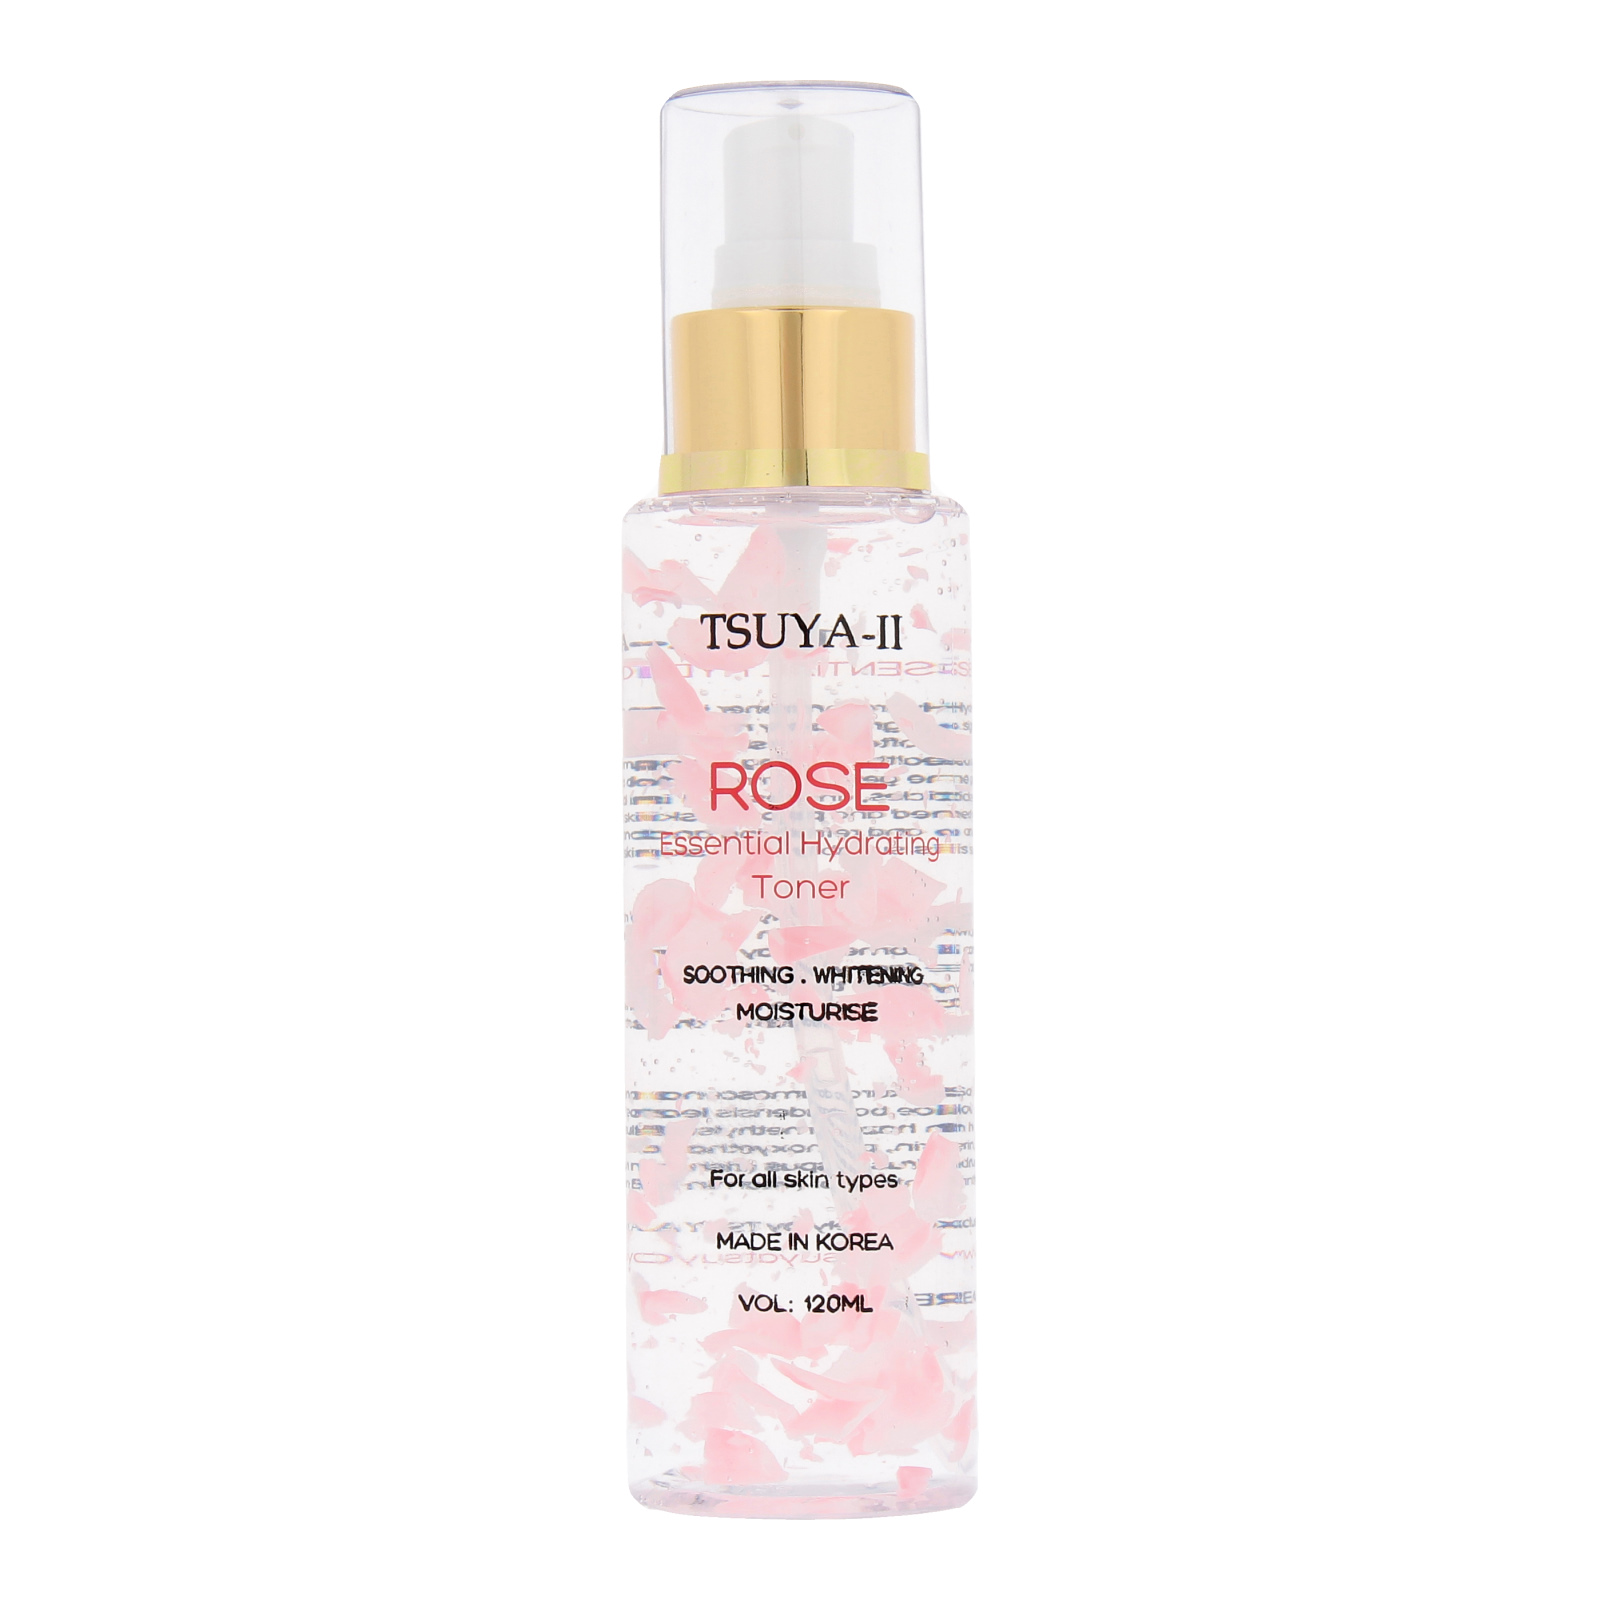 TSUYA -II Rose Essential Hydrating Toner